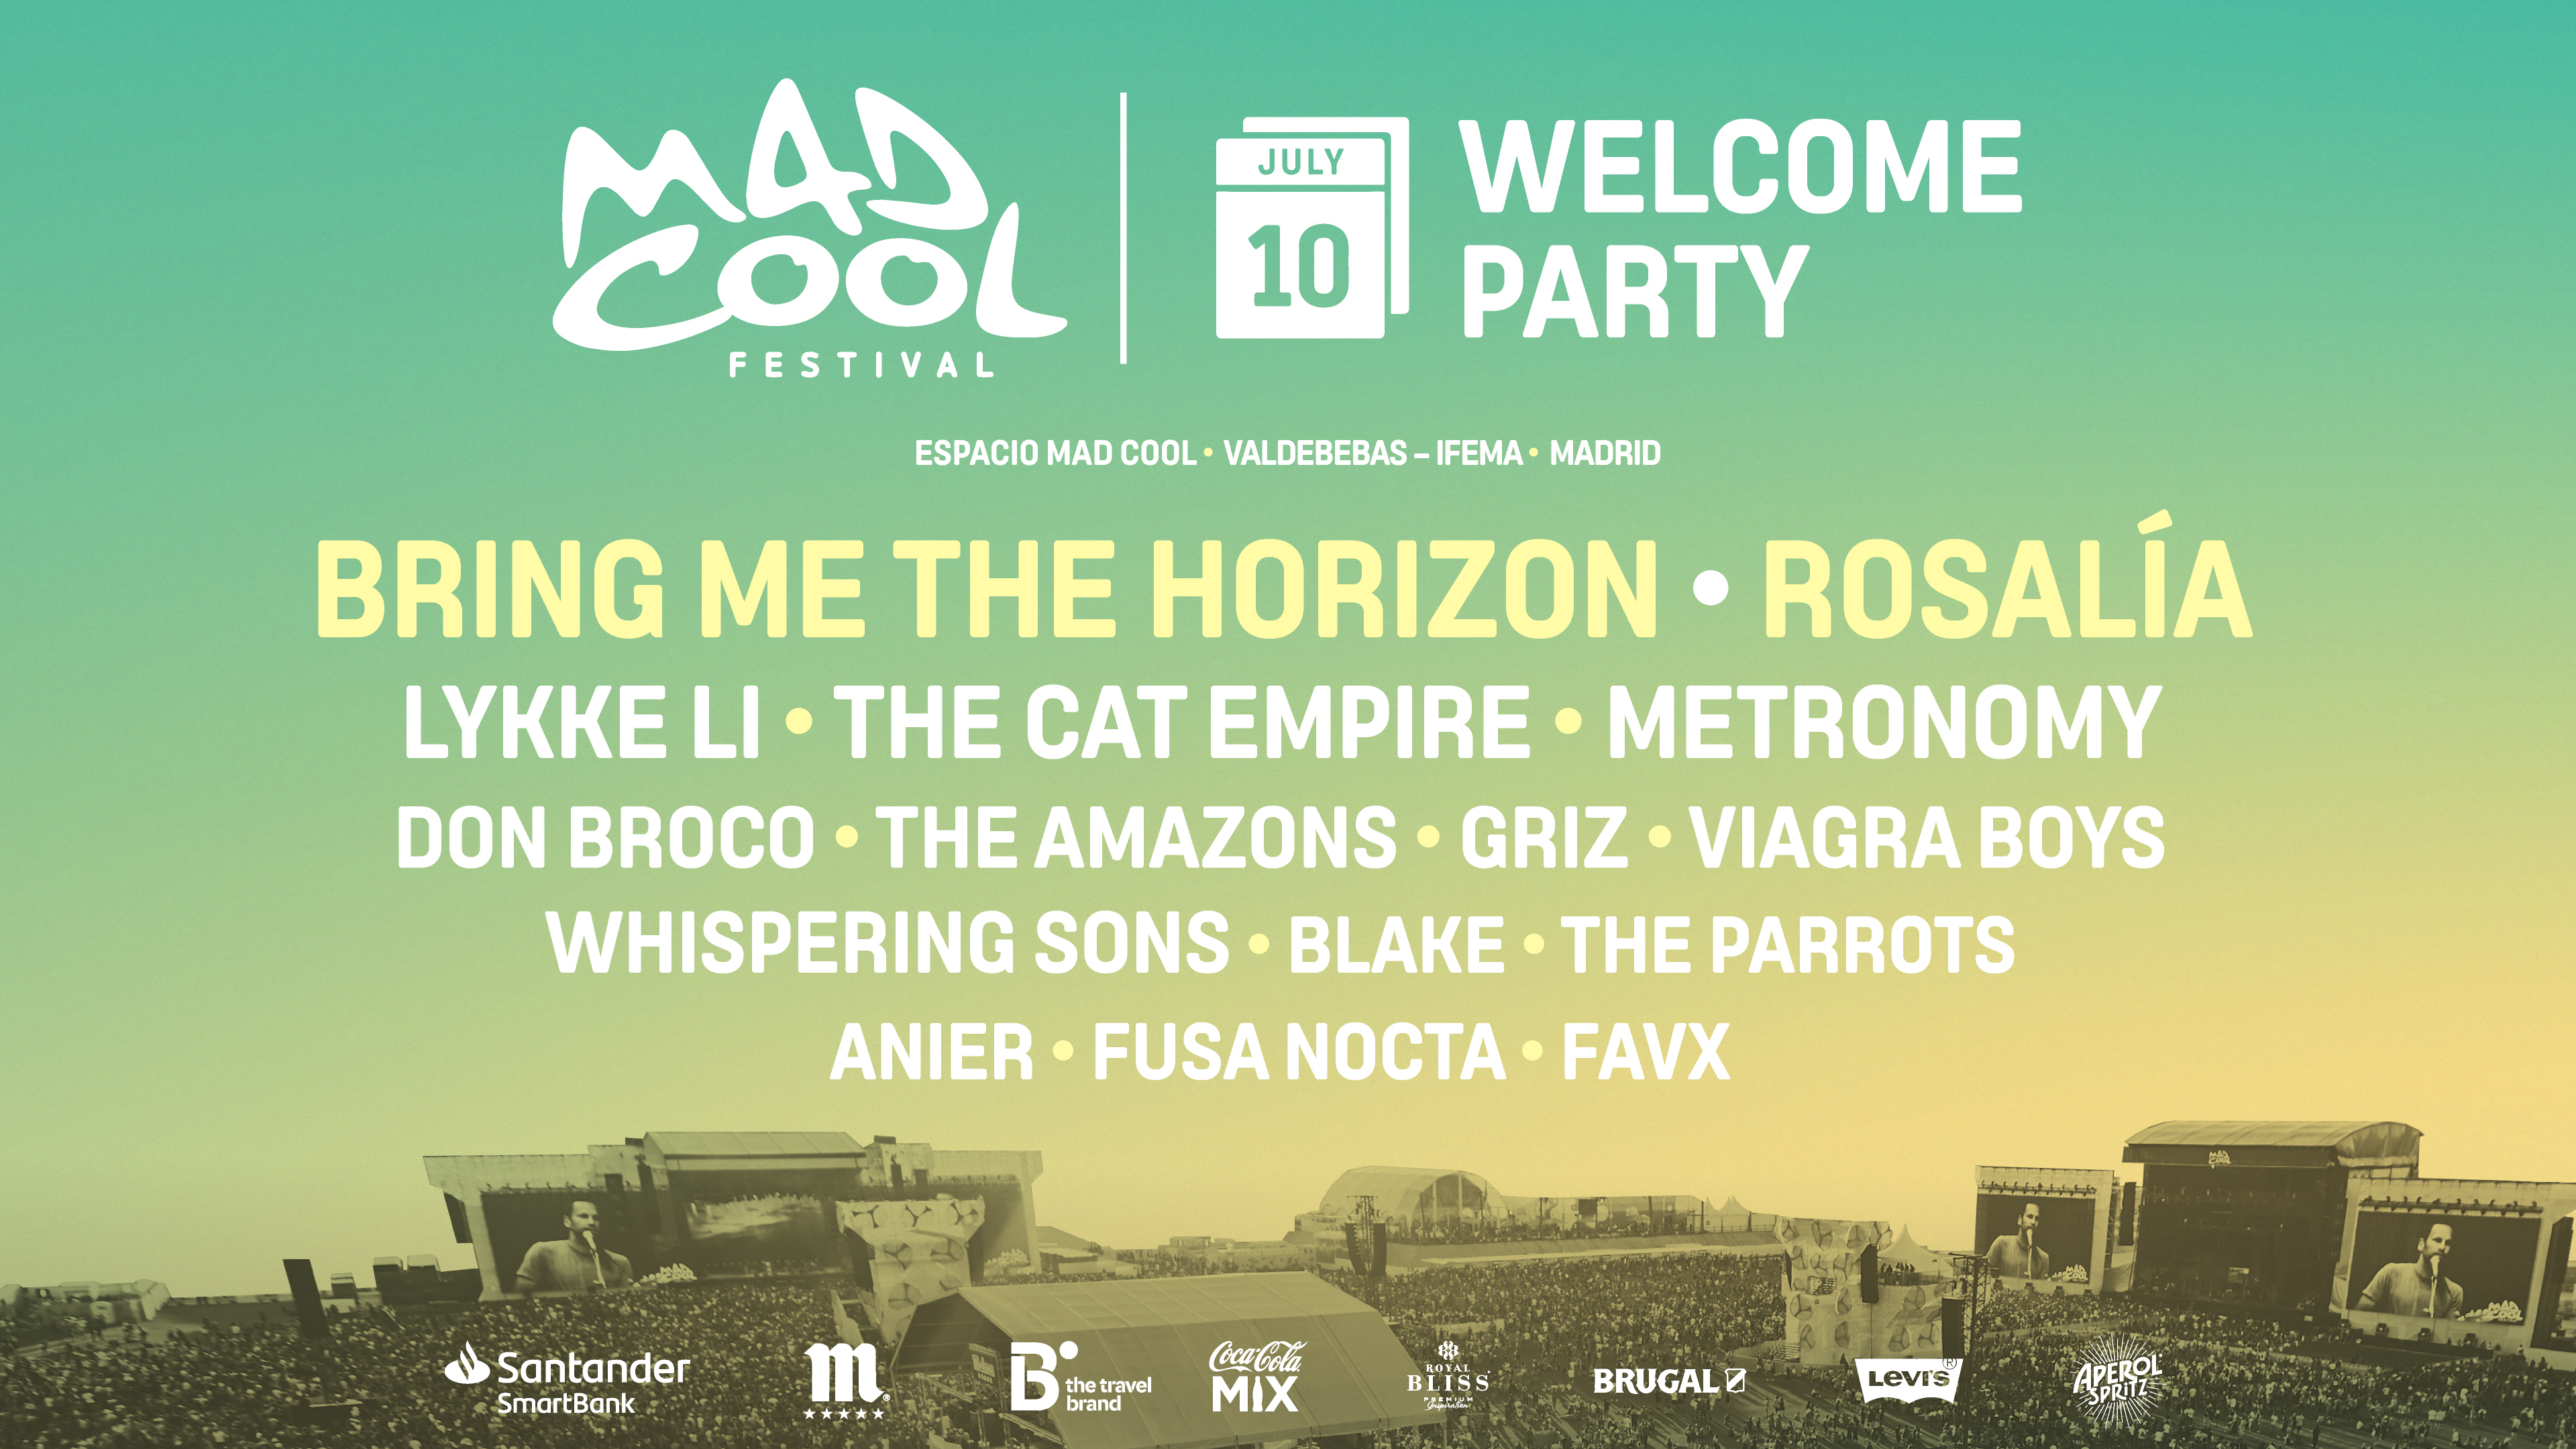 MadCool2019_welcome_party_landscape